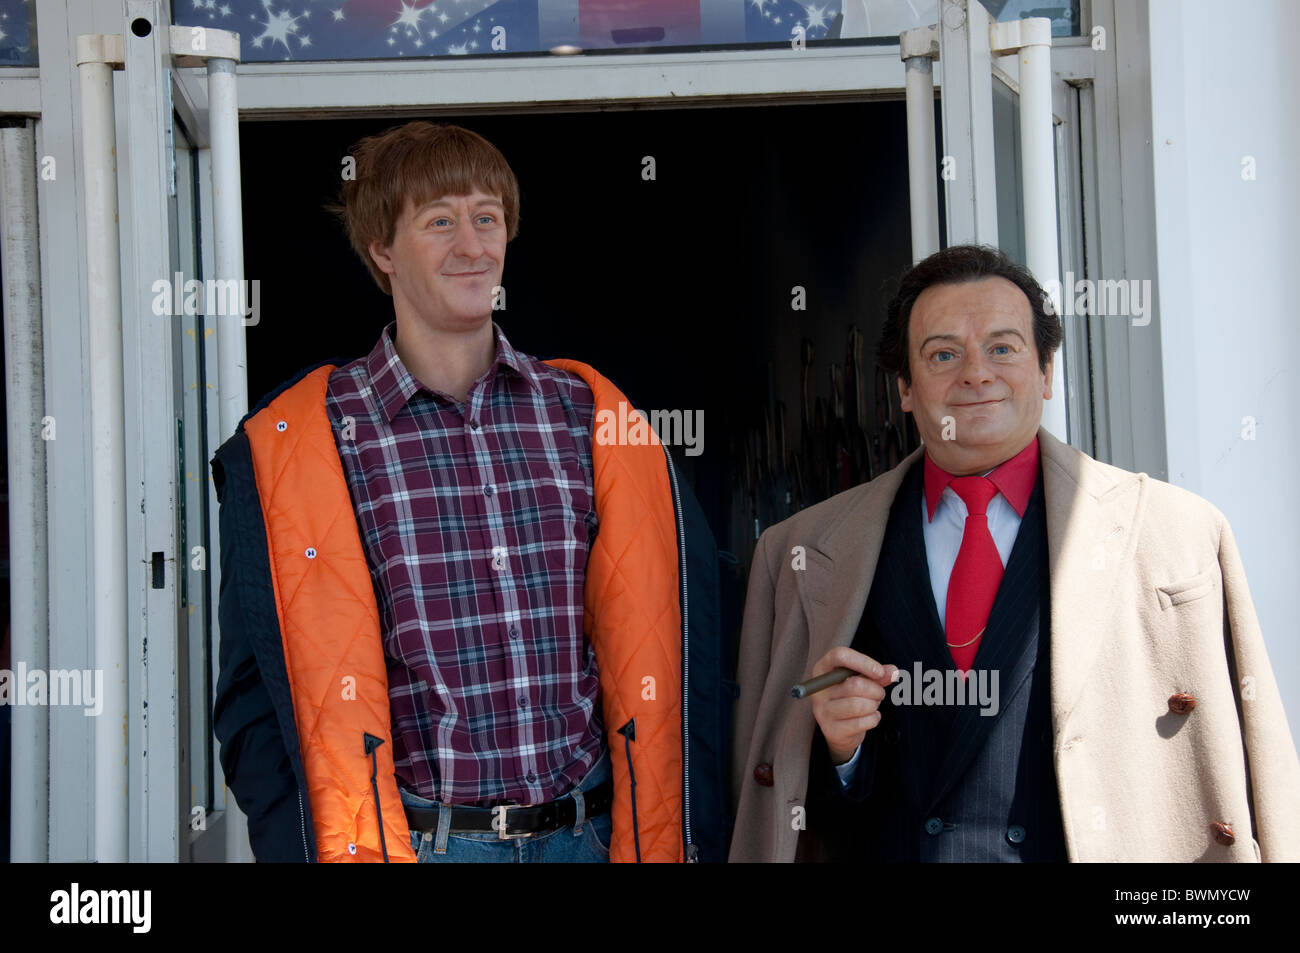 Only Fools and Horses Rodney and Del Bay wax figures in Blackpool on the coast of Lancashire in Northern England - Stock Image